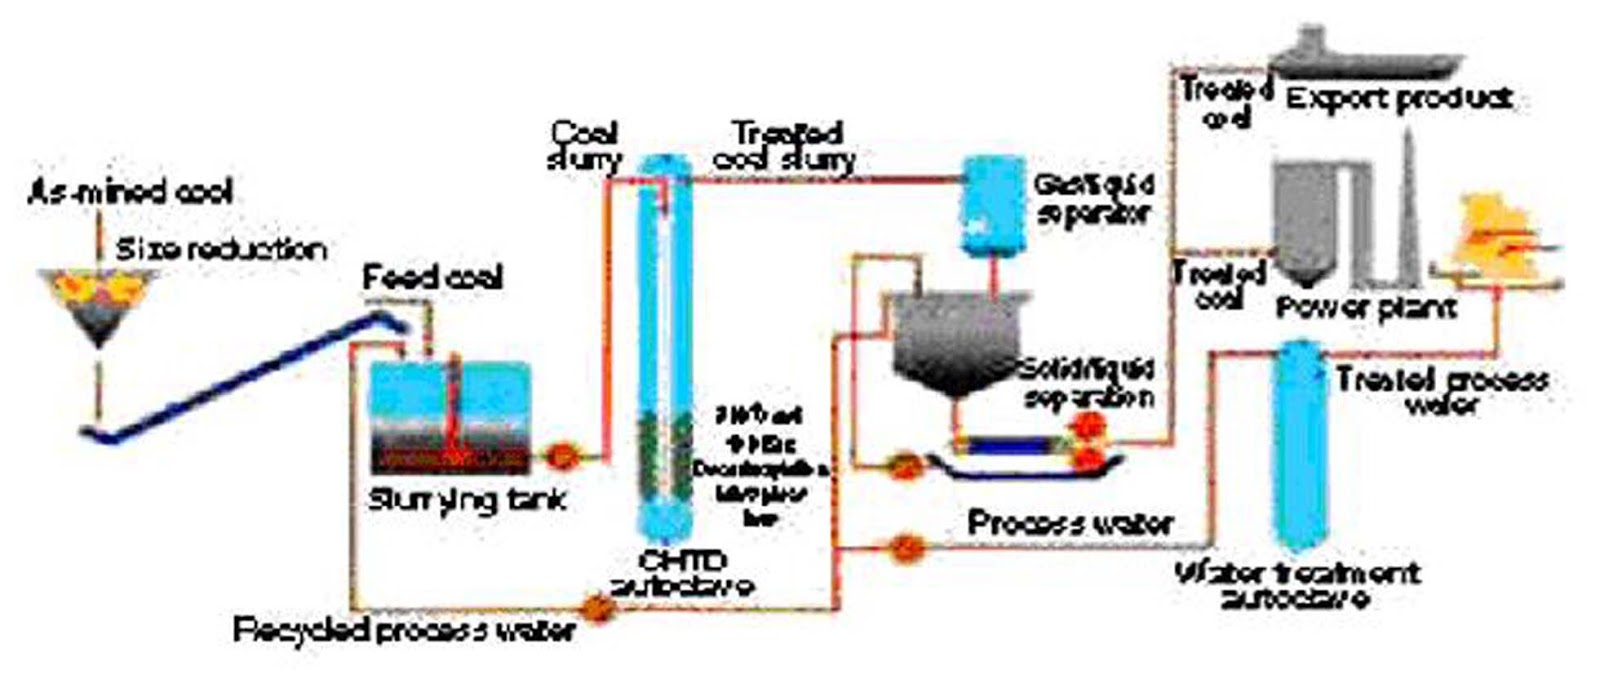 Hydrothermal dewatering f y o f a t e c h diagram alir metode hydrothermal dewatering ccuart Image collections